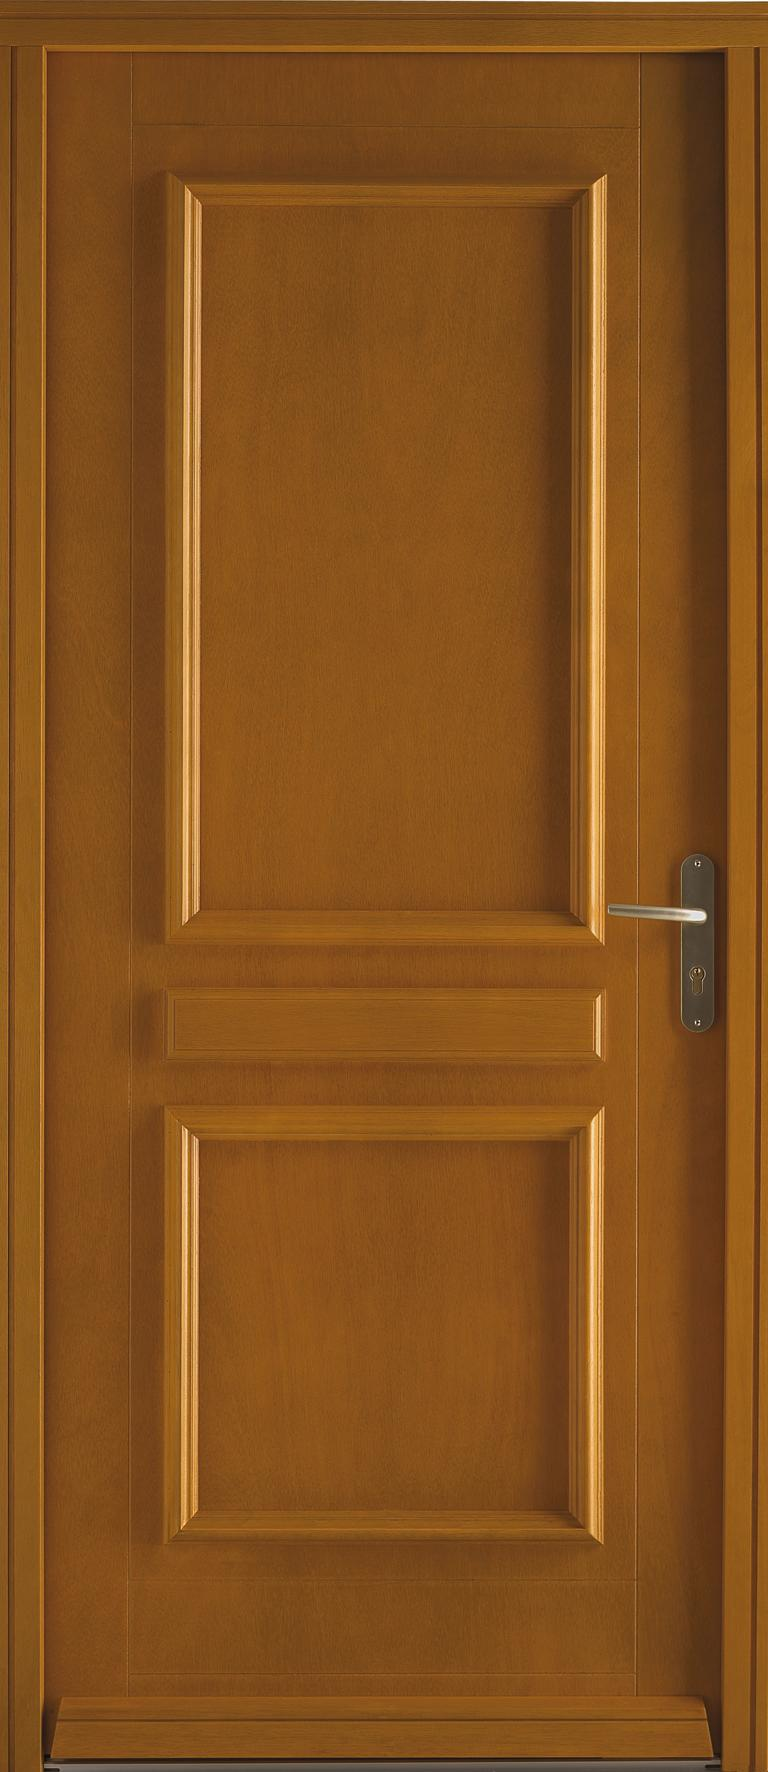 Portes D 39 Entr E Bois Come Batiman Experts En